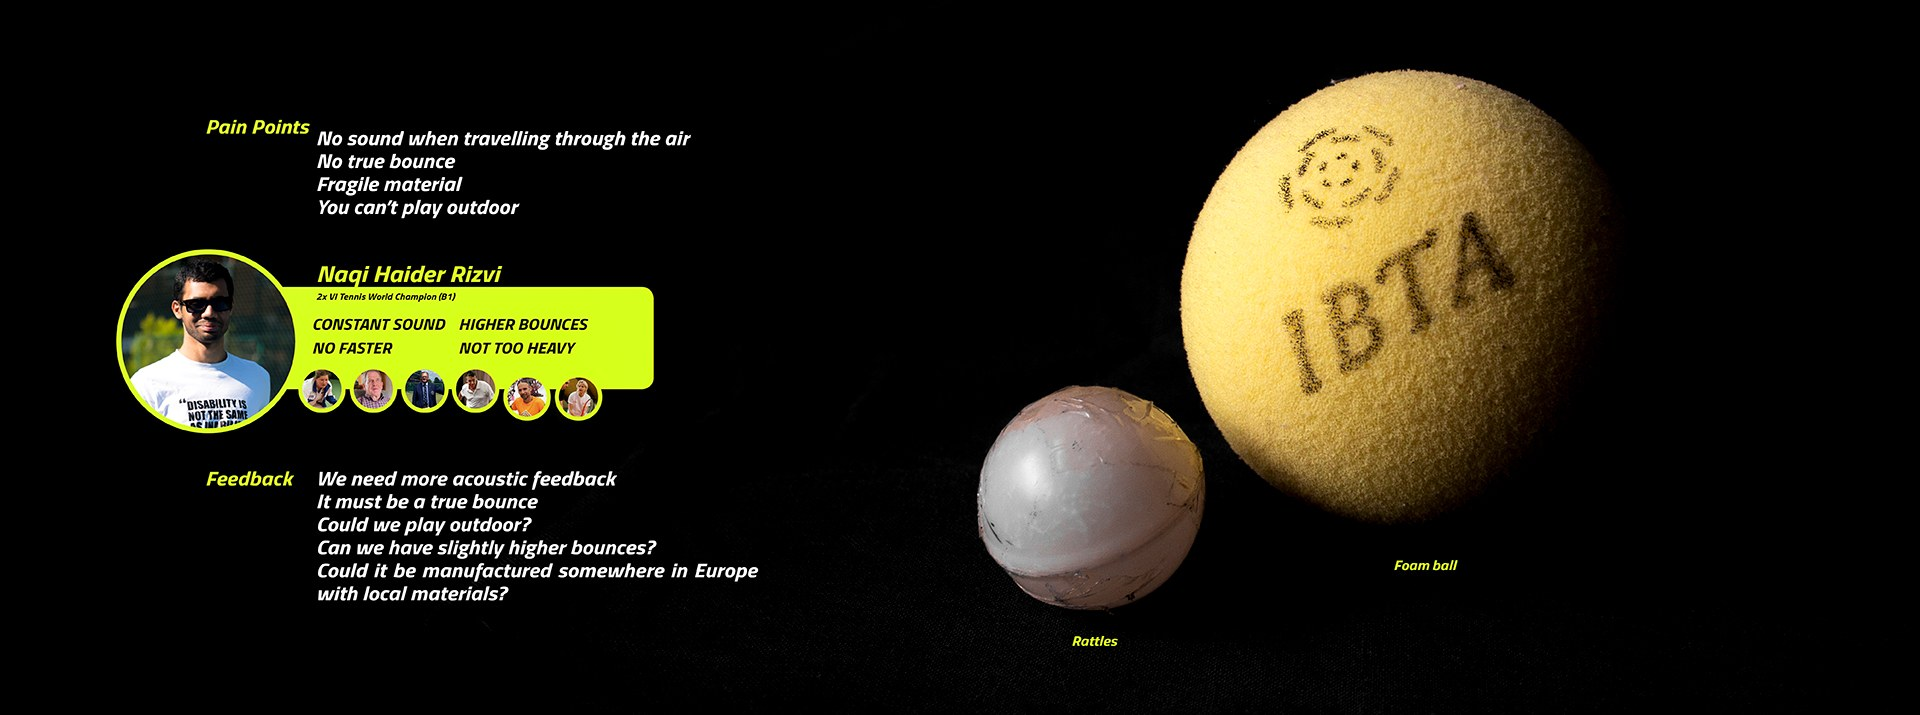 The VI Tennis Ball currently in use